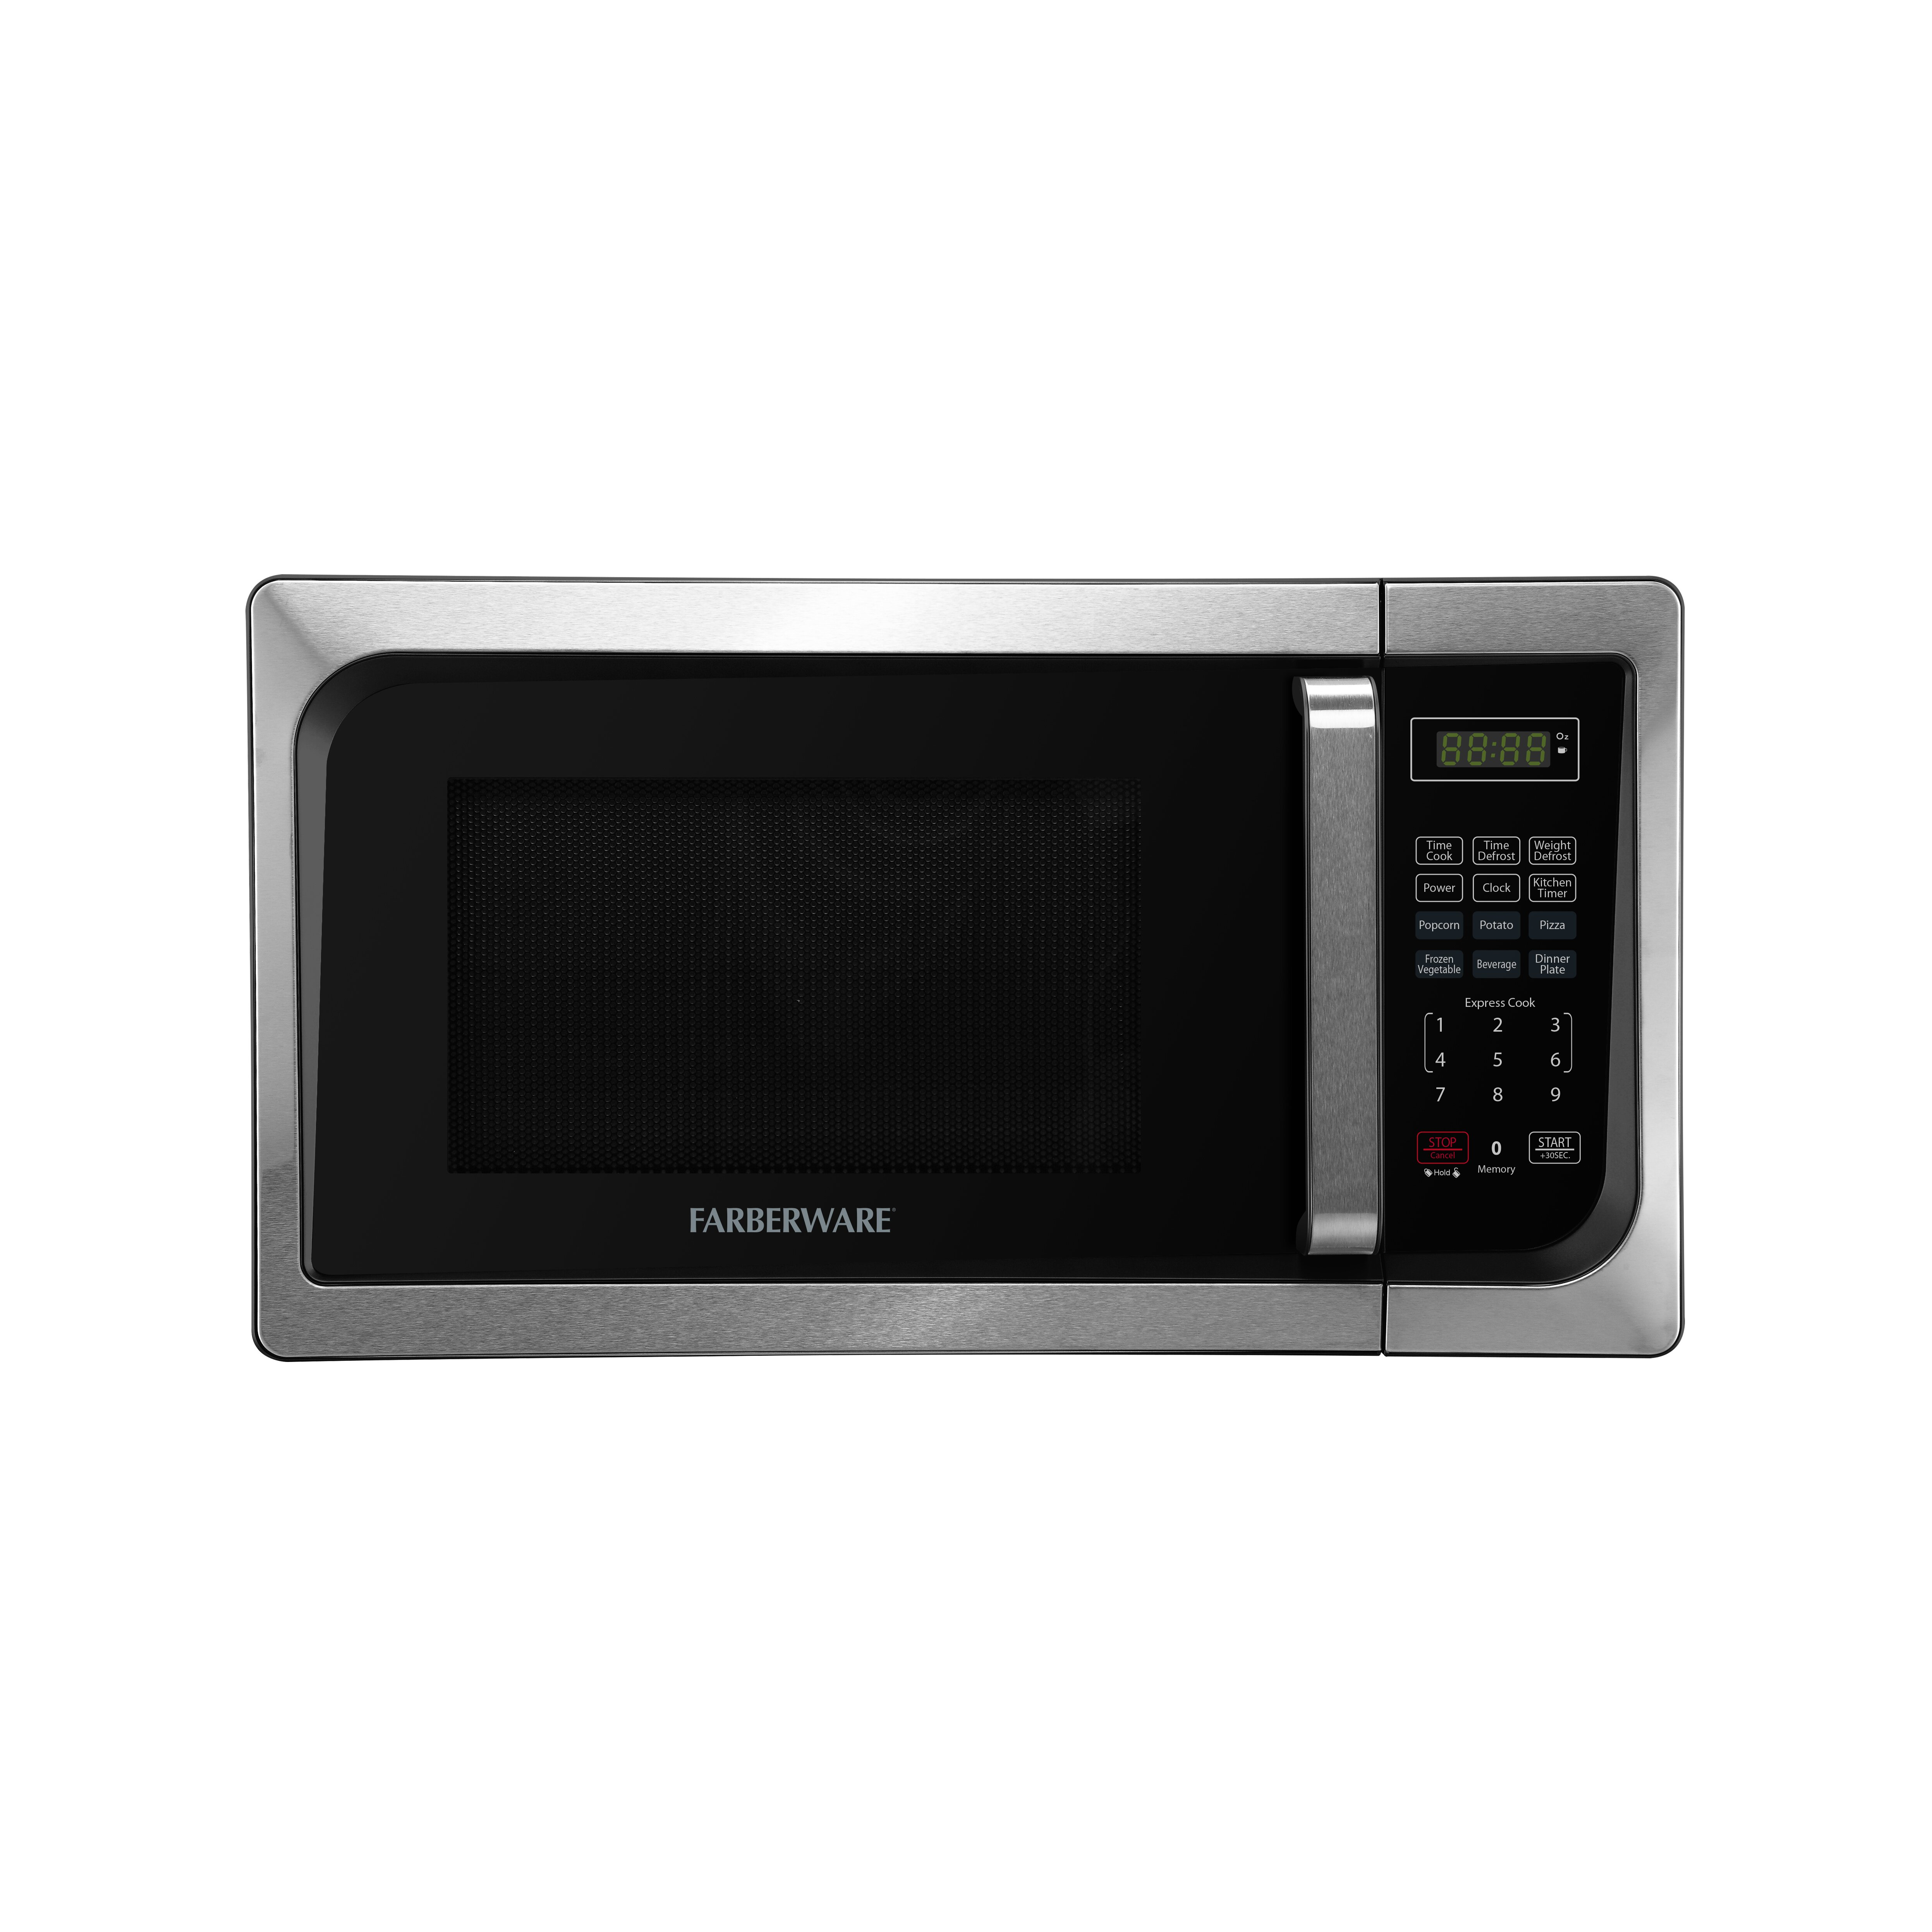 Countertop Microwave Oven Reviews : ... Classic 0.9 Cu. Ft. 900W Countertop Microwave Oven & Reviews Wayfair